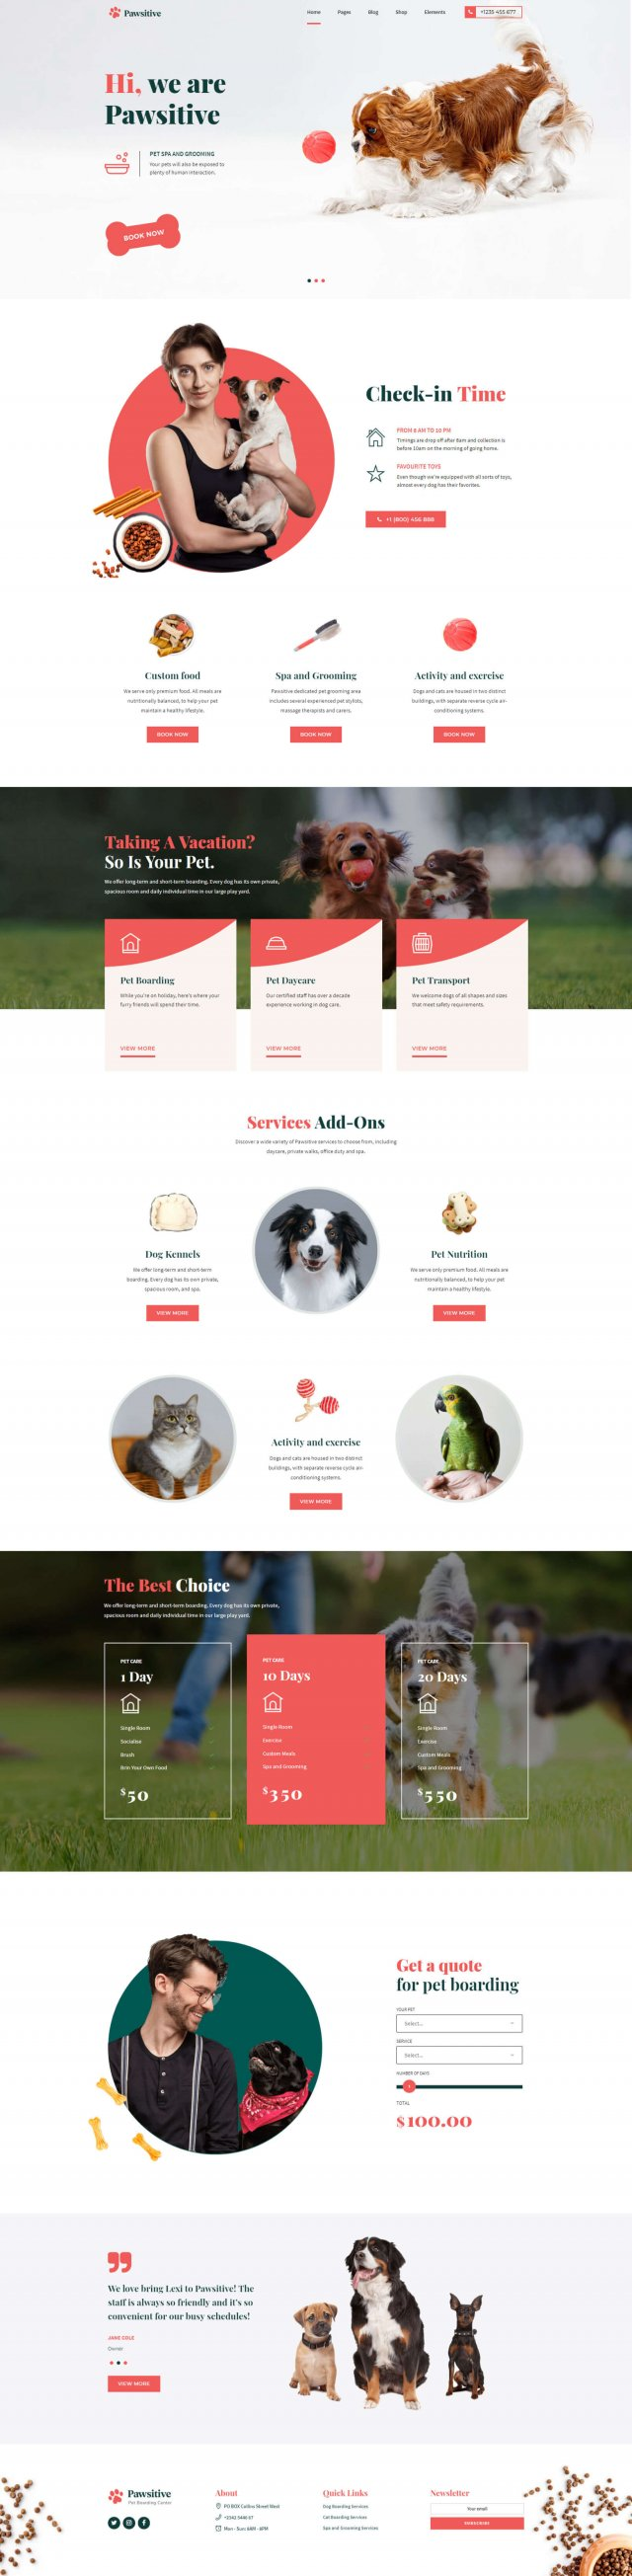 http://pawsitive.bold-themes.com/wp-content/uploads/2019/09/Bella-Home-01-640x2609.jpg